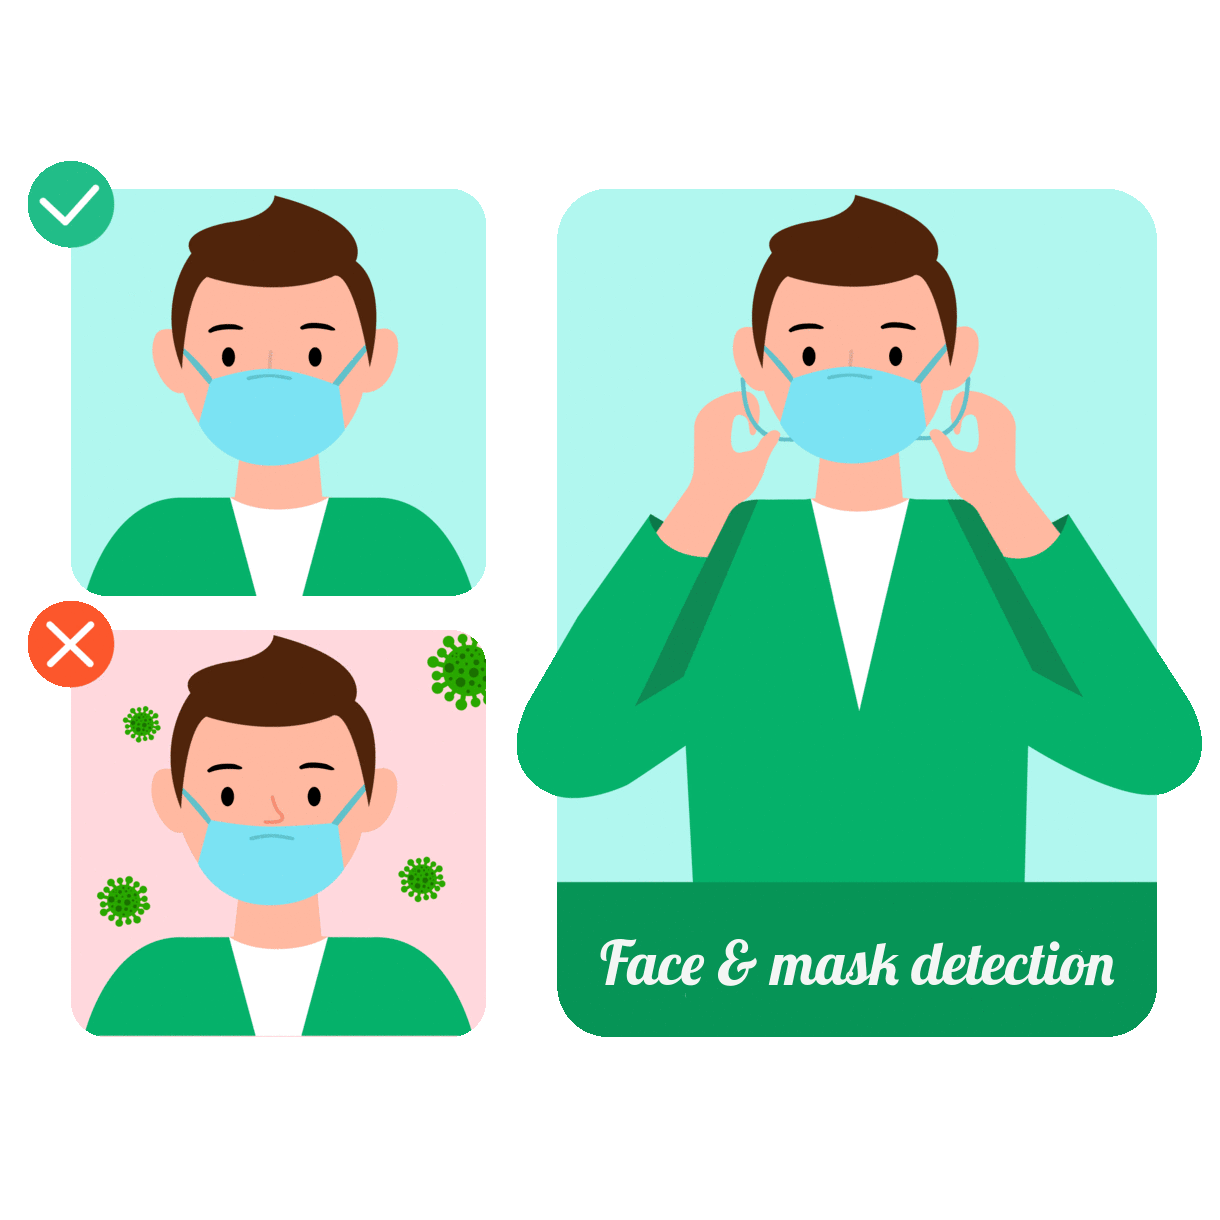 /we-built-a-face-and-mask-detection-web-app-for-google-chrome-836n33aq feature image